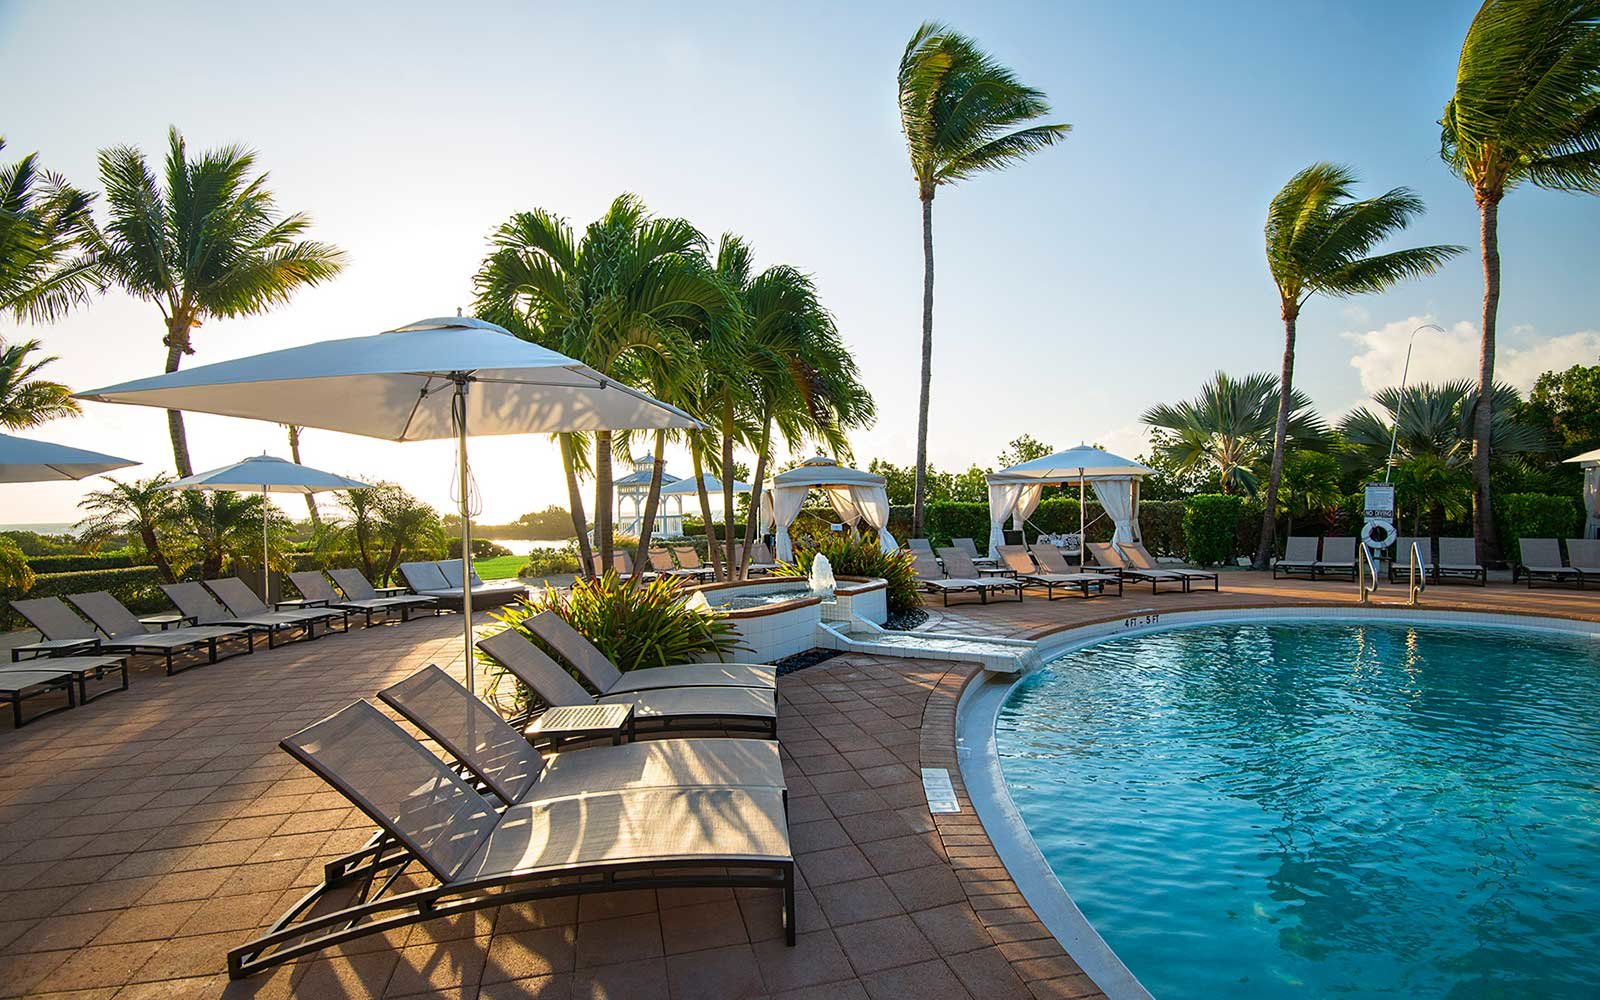 Hawks Cay Resort Hotel in Florida